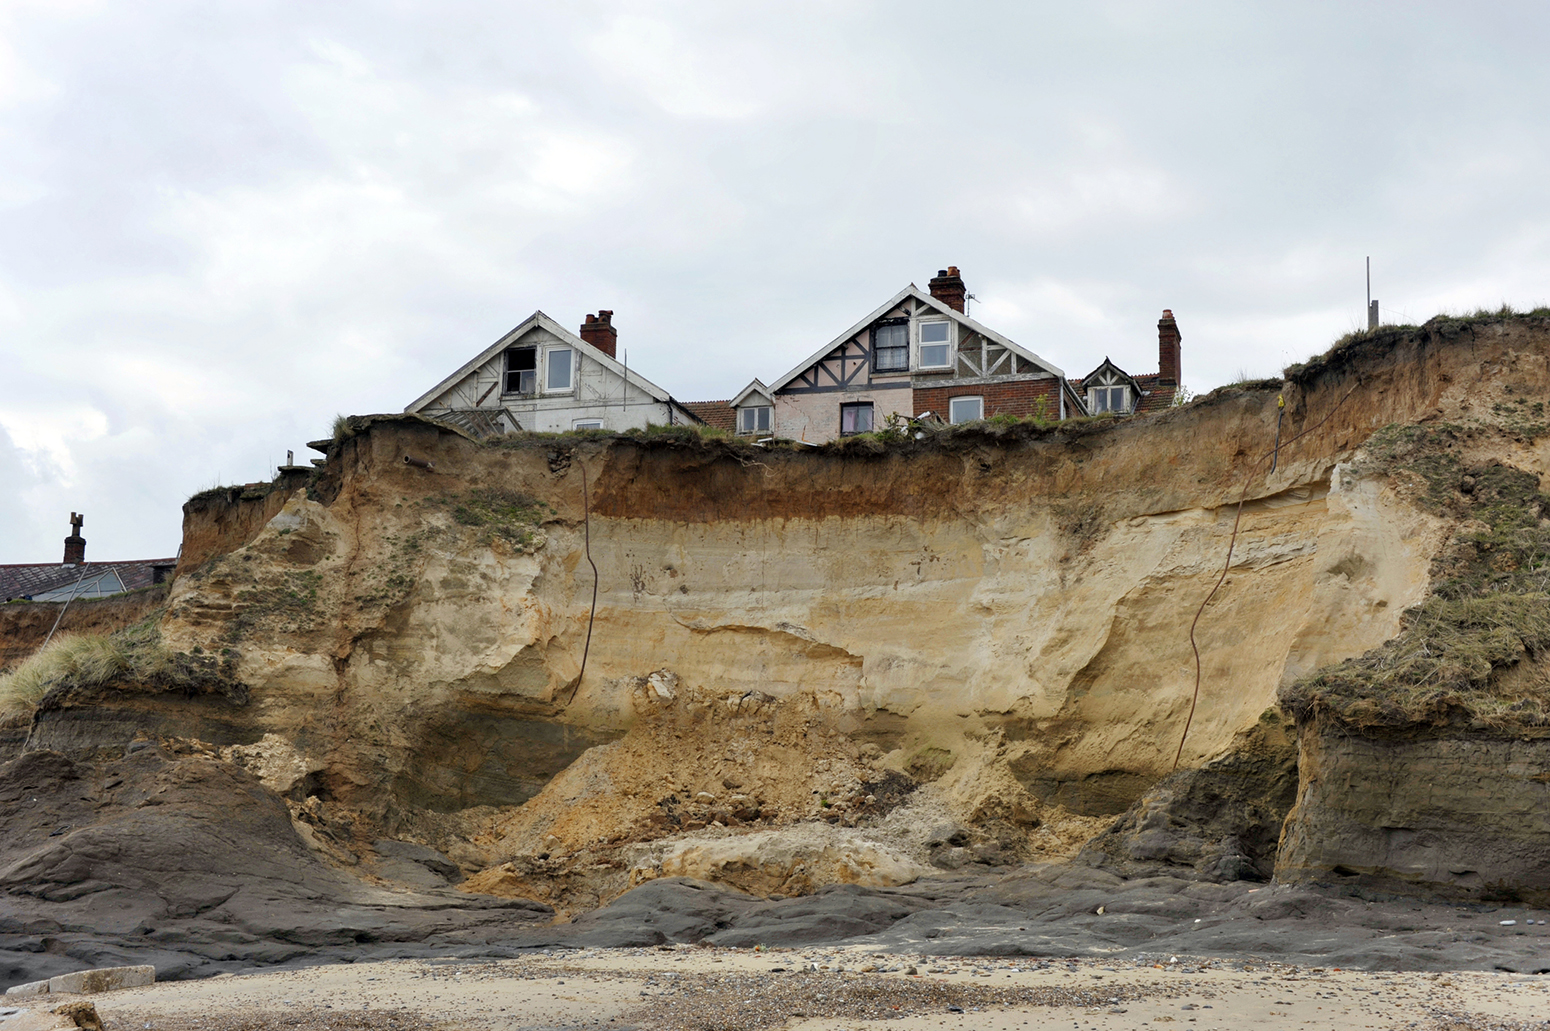 Homes in danger on the cliff edge at Happisburgh, Norfolk, UK